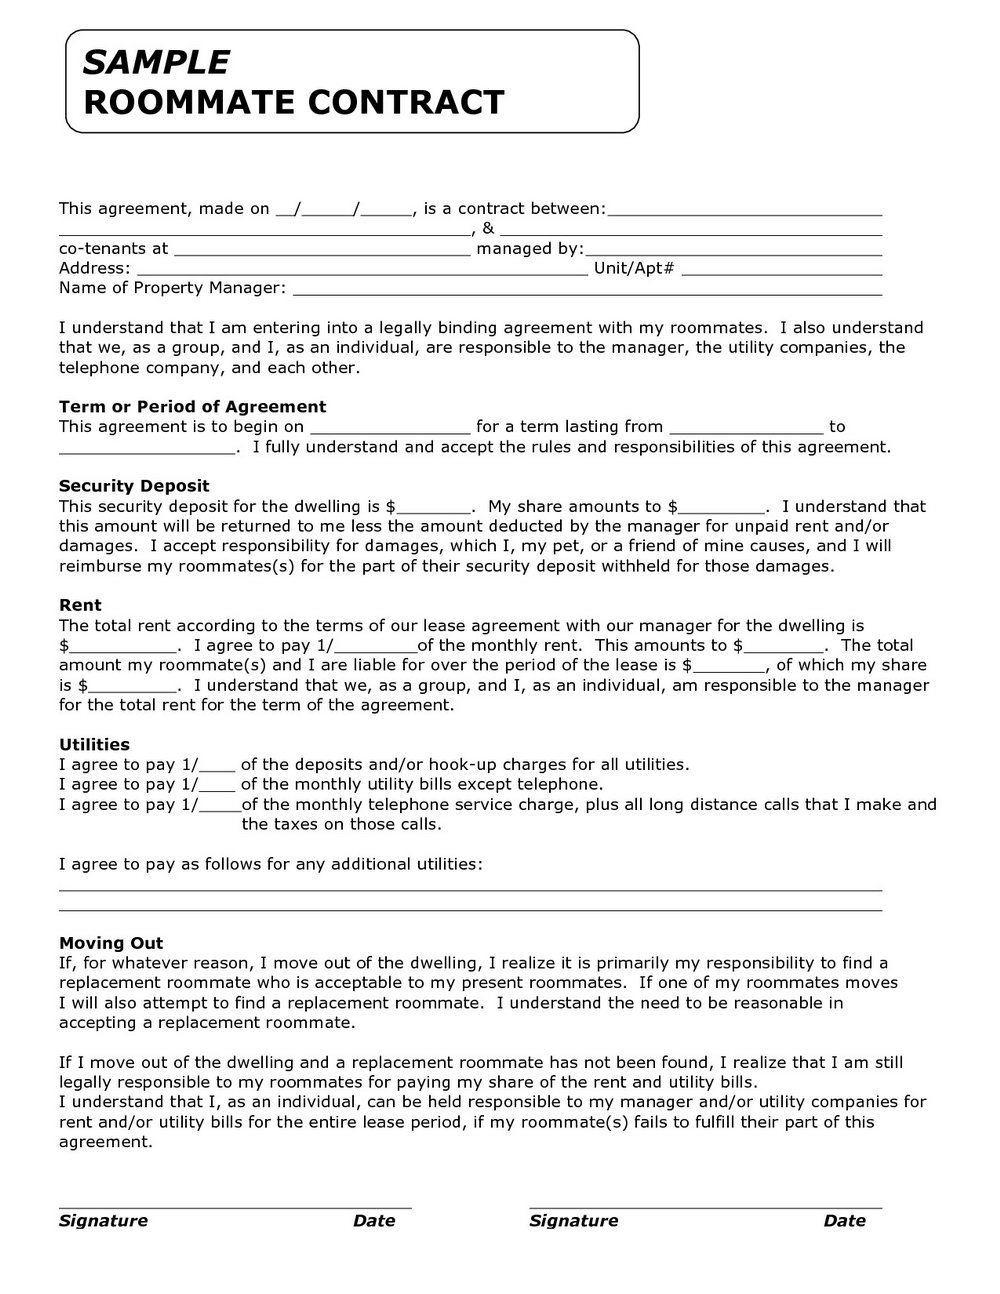 Standard Form Of Store Lease New York 704